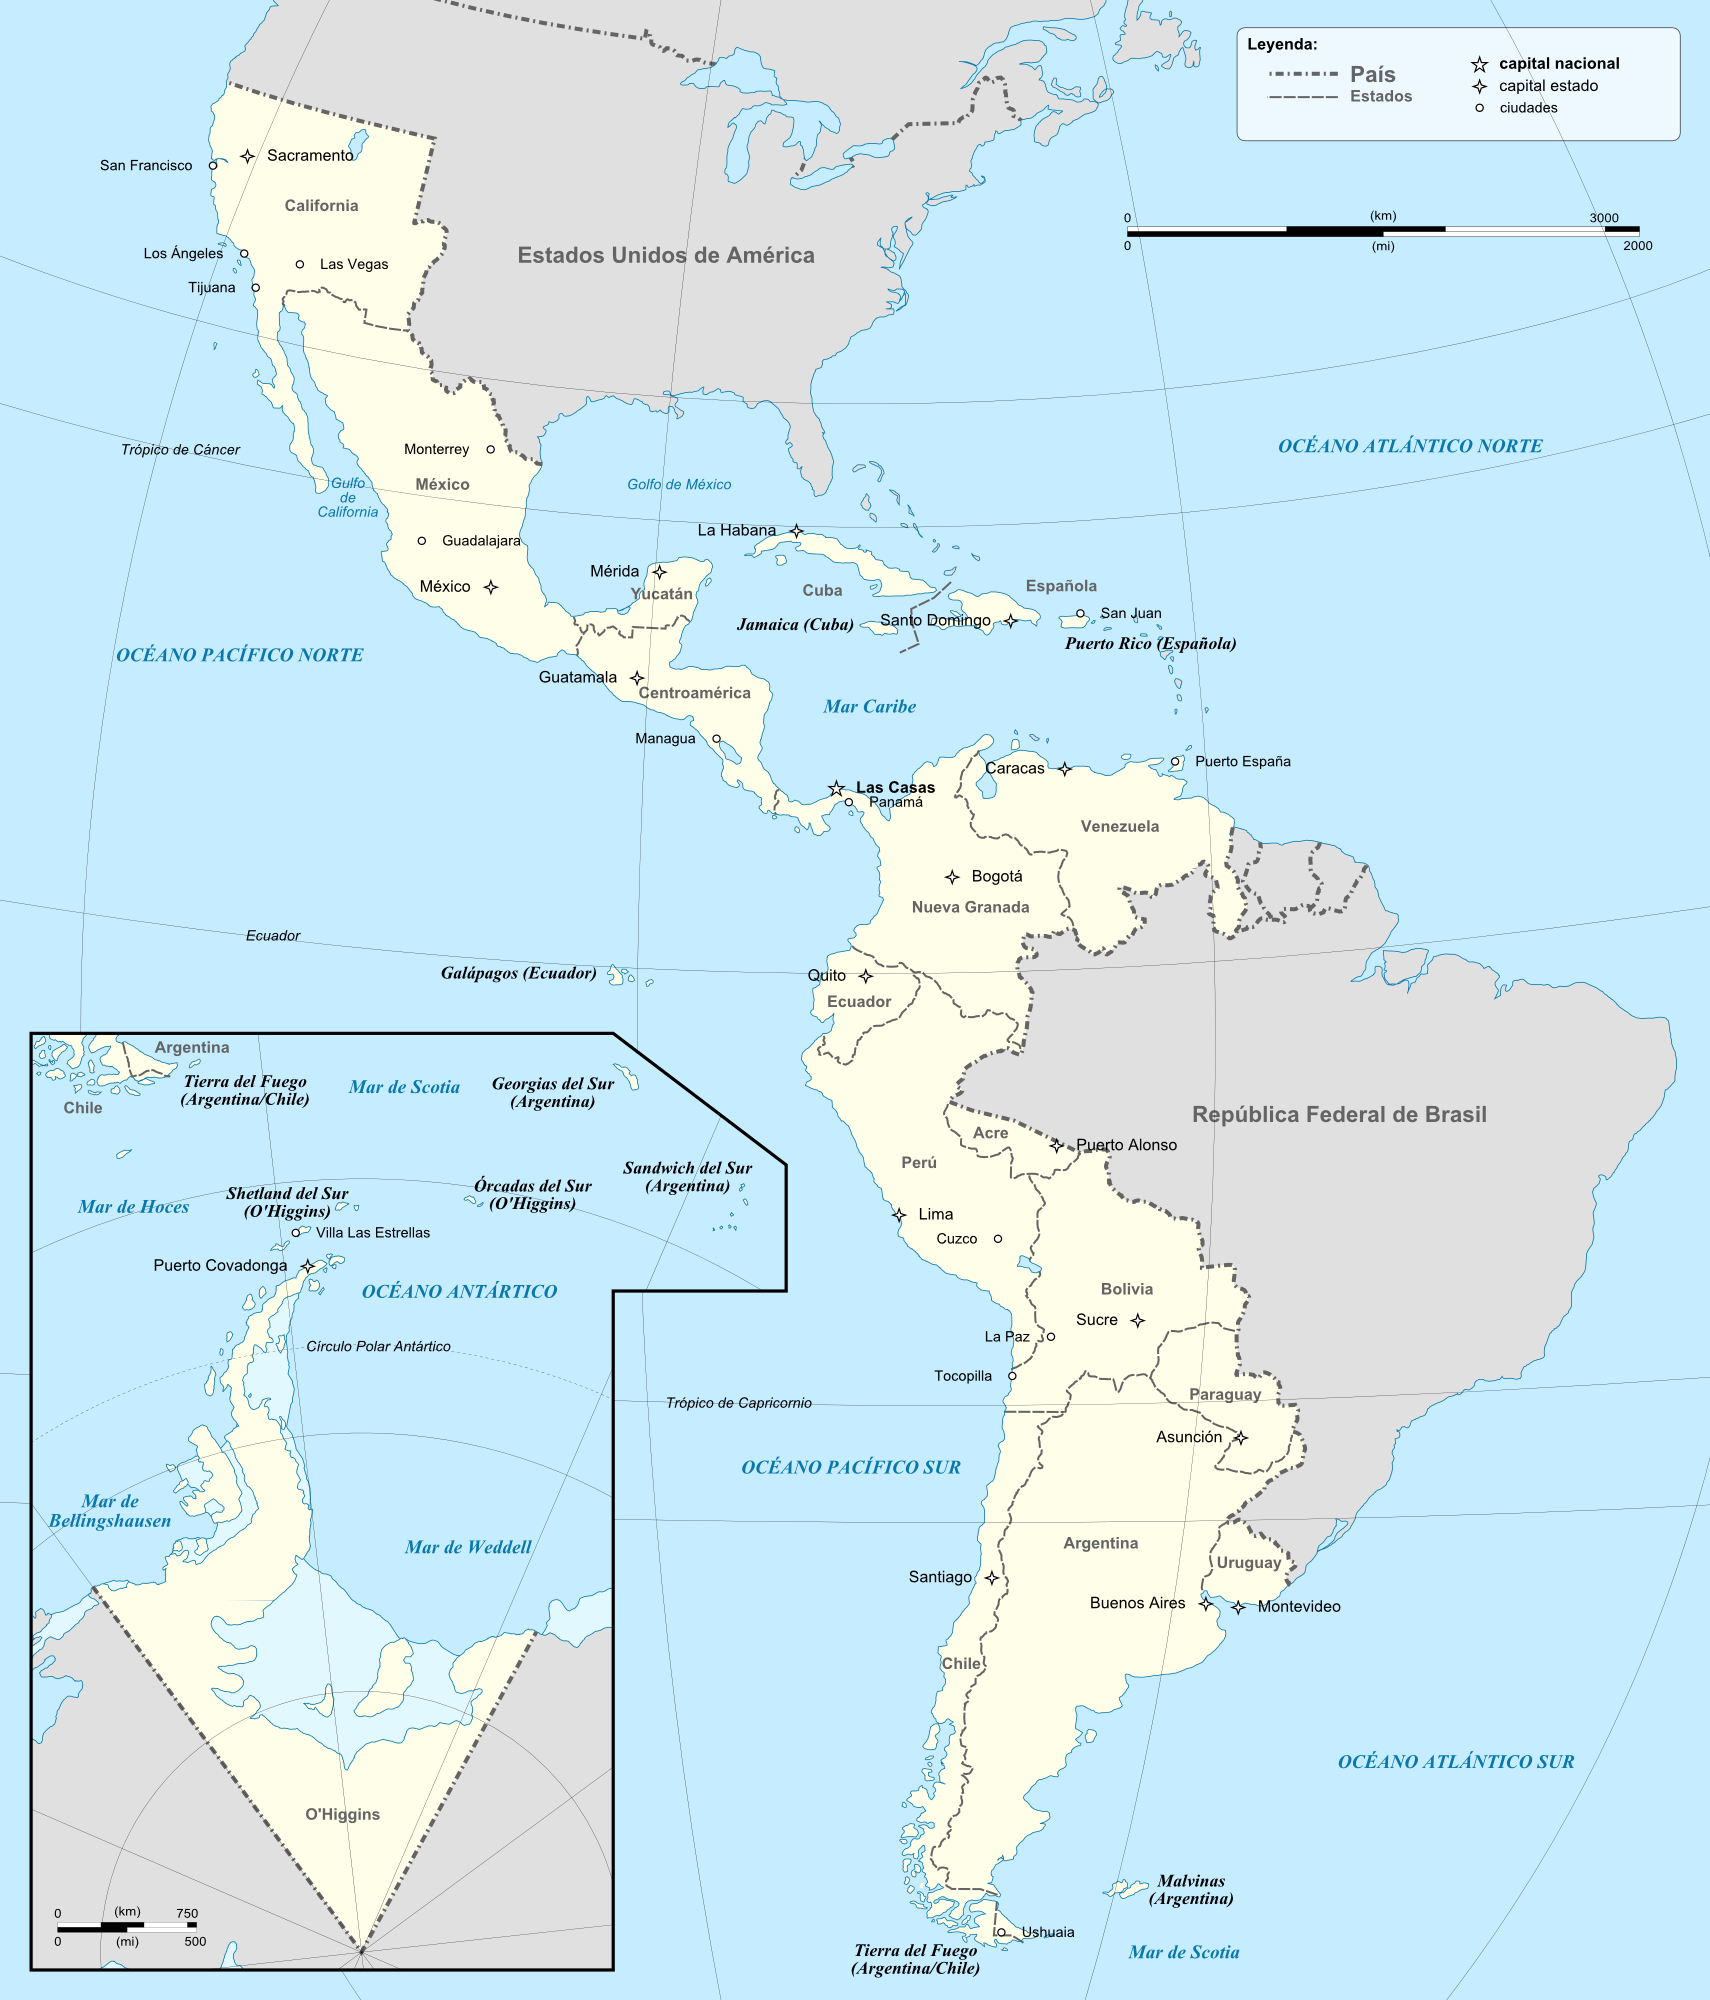 States of Colombia (Bolivar's Dream)